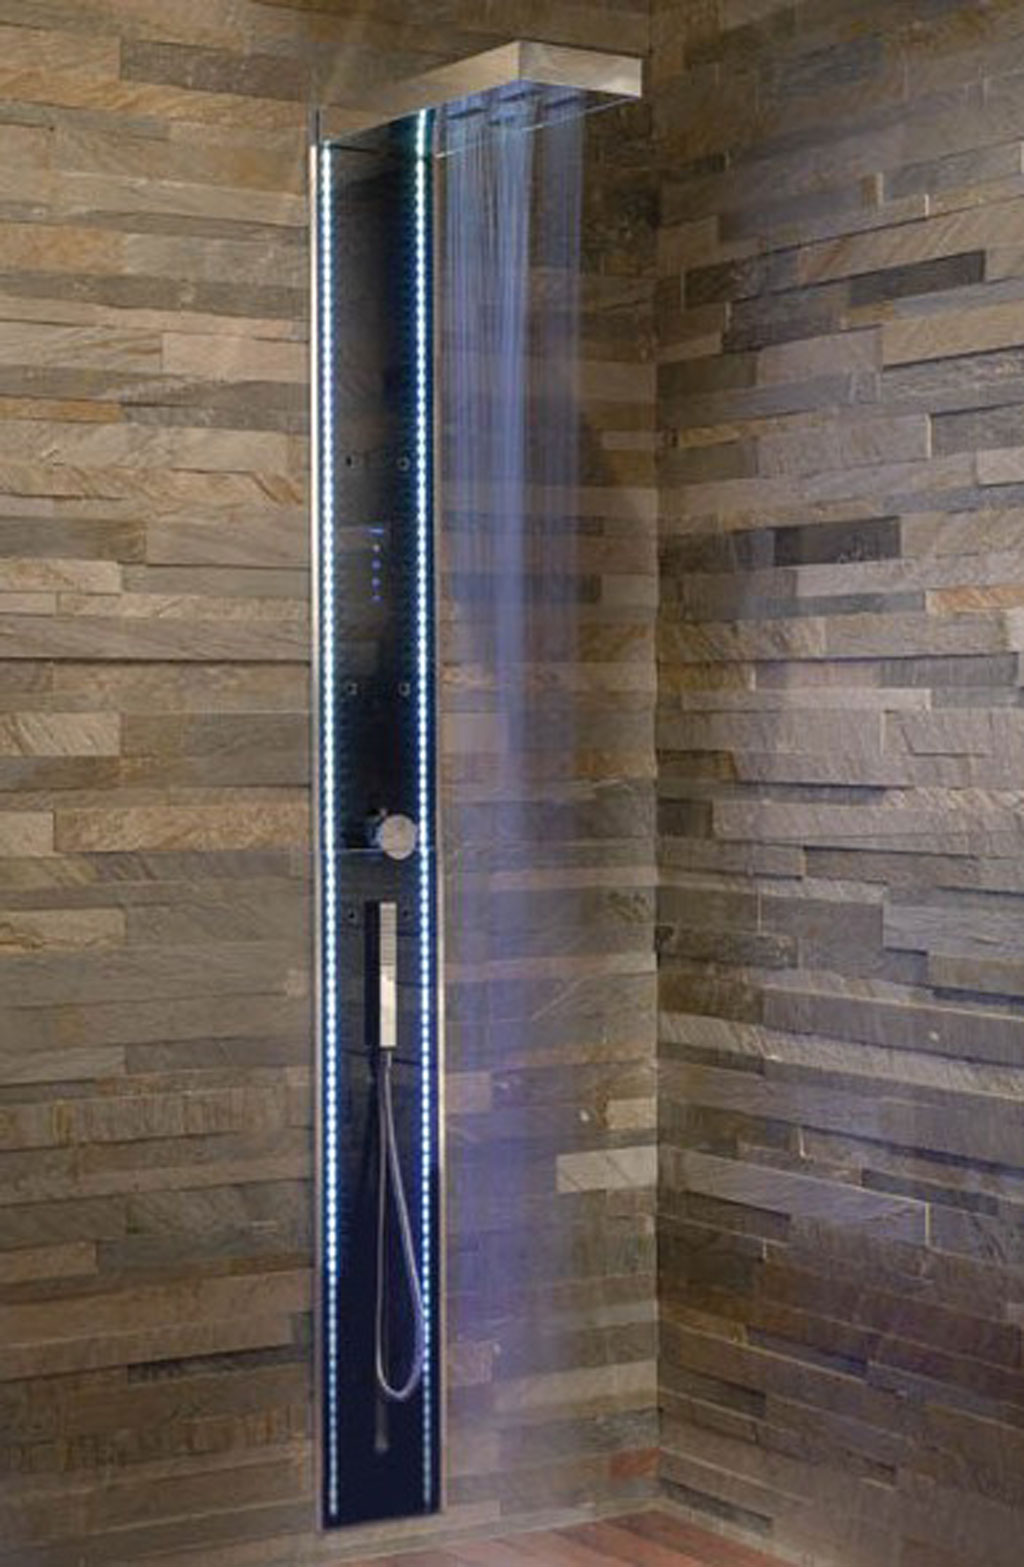 32 good ideas and pictures of modern bathroom tiles texture for Bathroom tile design ideas